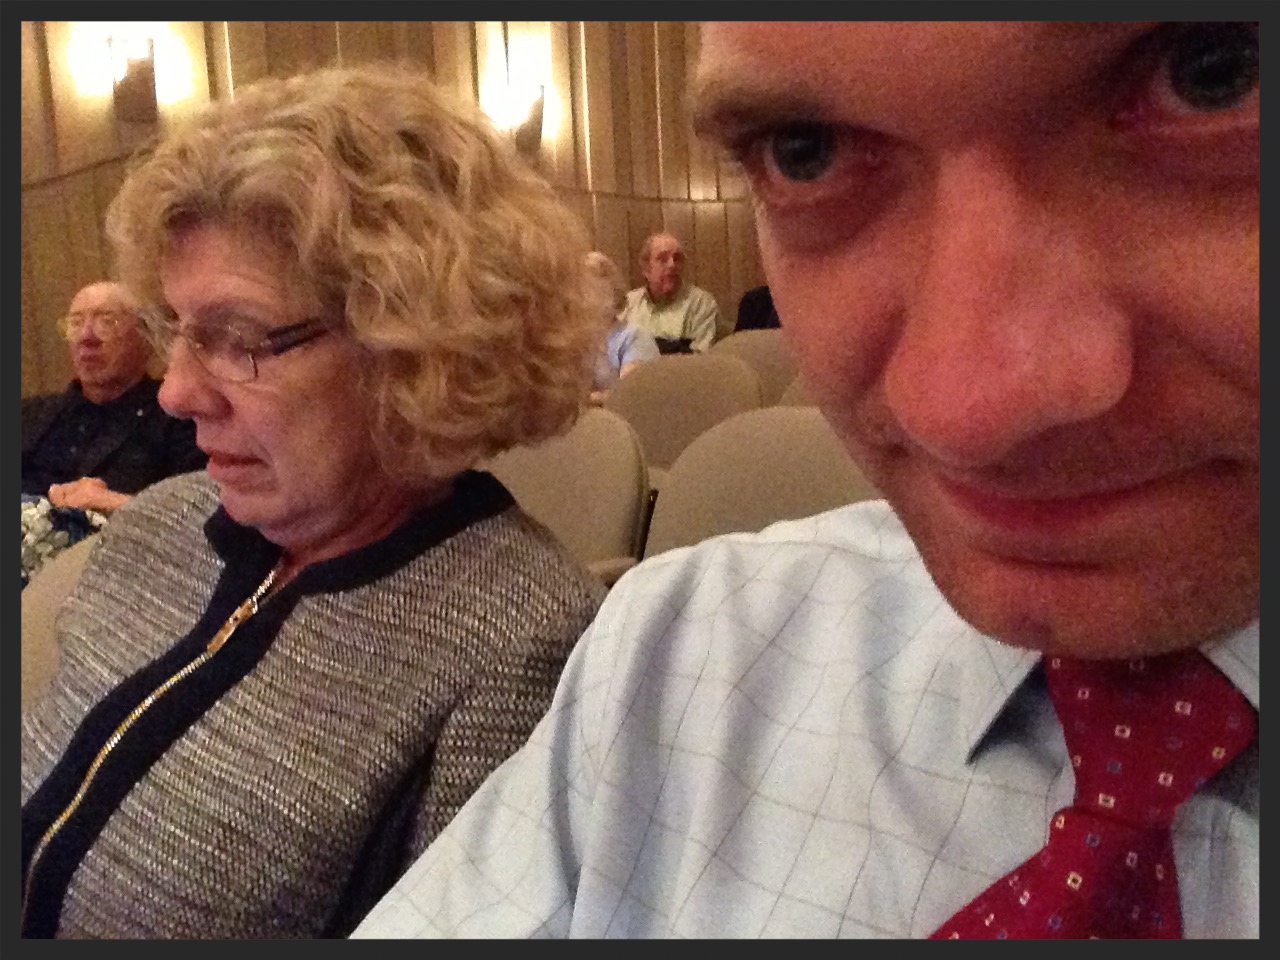 Doc Richards and I sitting in the auditorium.